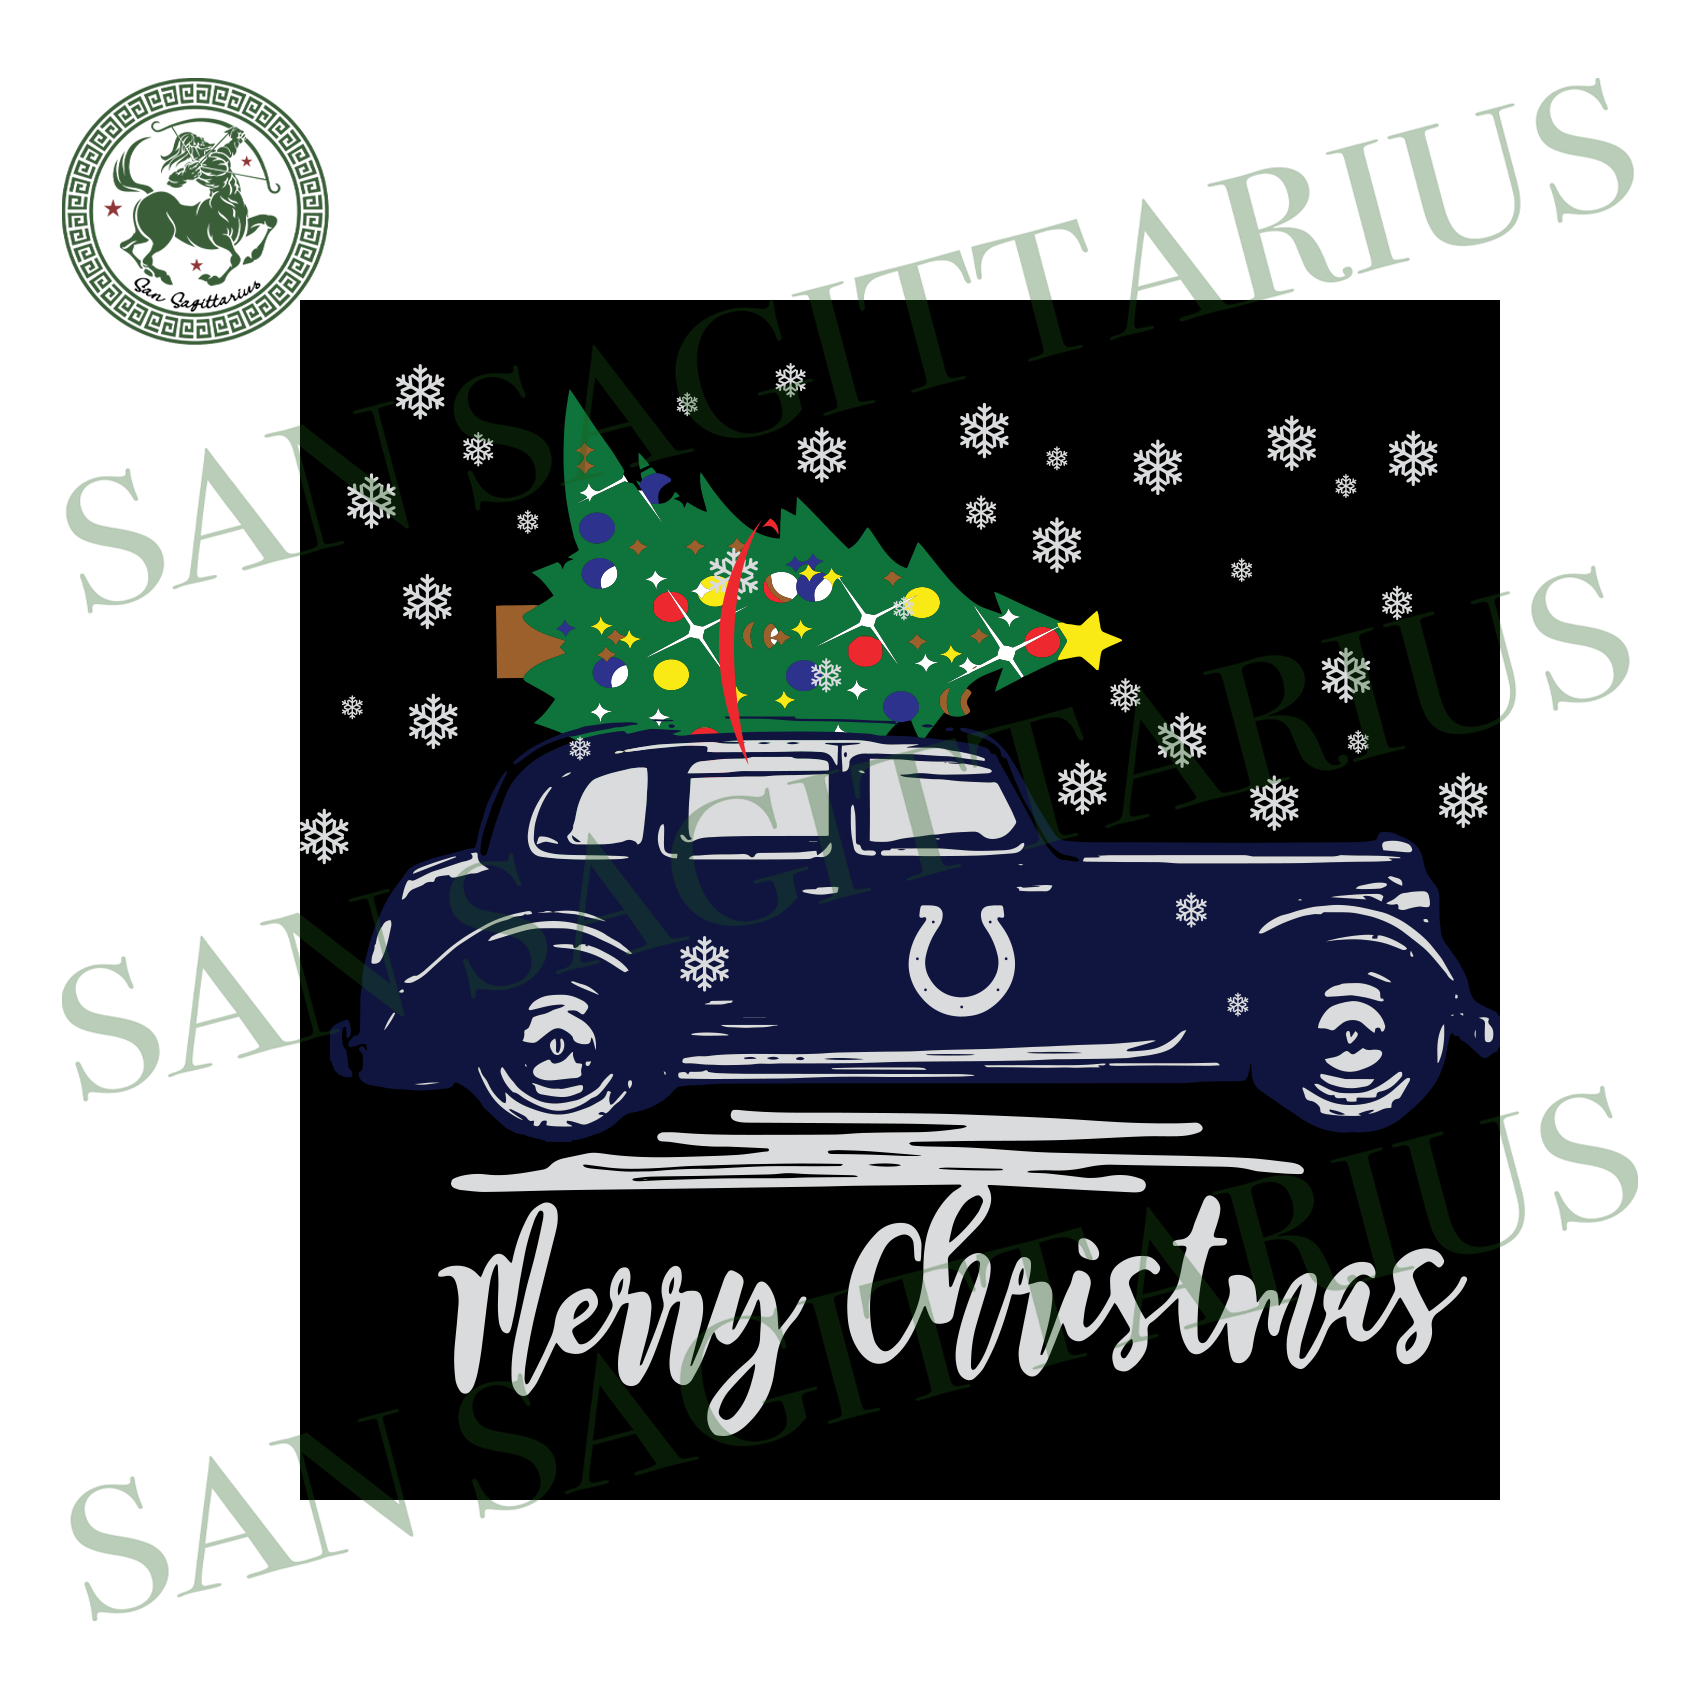 Christmas With Indianapolis Colts, Sport Svg, Christmas Svg, Indianapolis Colts Svg, NFL Sport Svg, Indianapolis Colts NFL Svg, Indianapolis Colts Shirt, Indianapolis Colts Gift, Football Svg